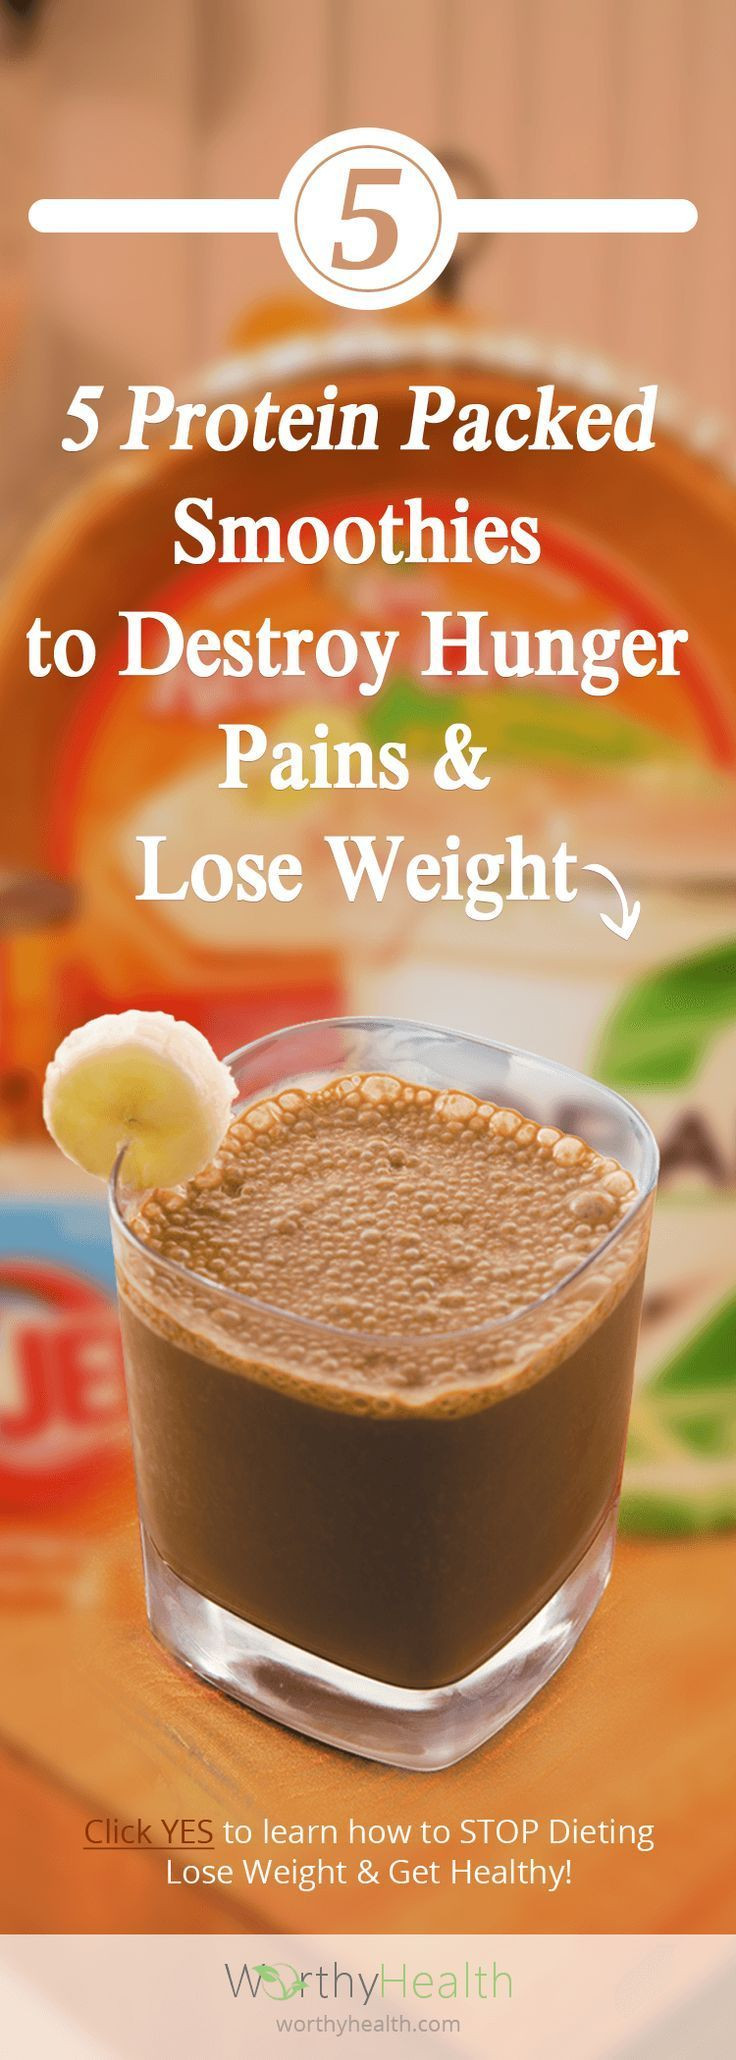 Weight Loss Protein Smoothies Best 25 Weight loss smoothies ideas on Pinterest